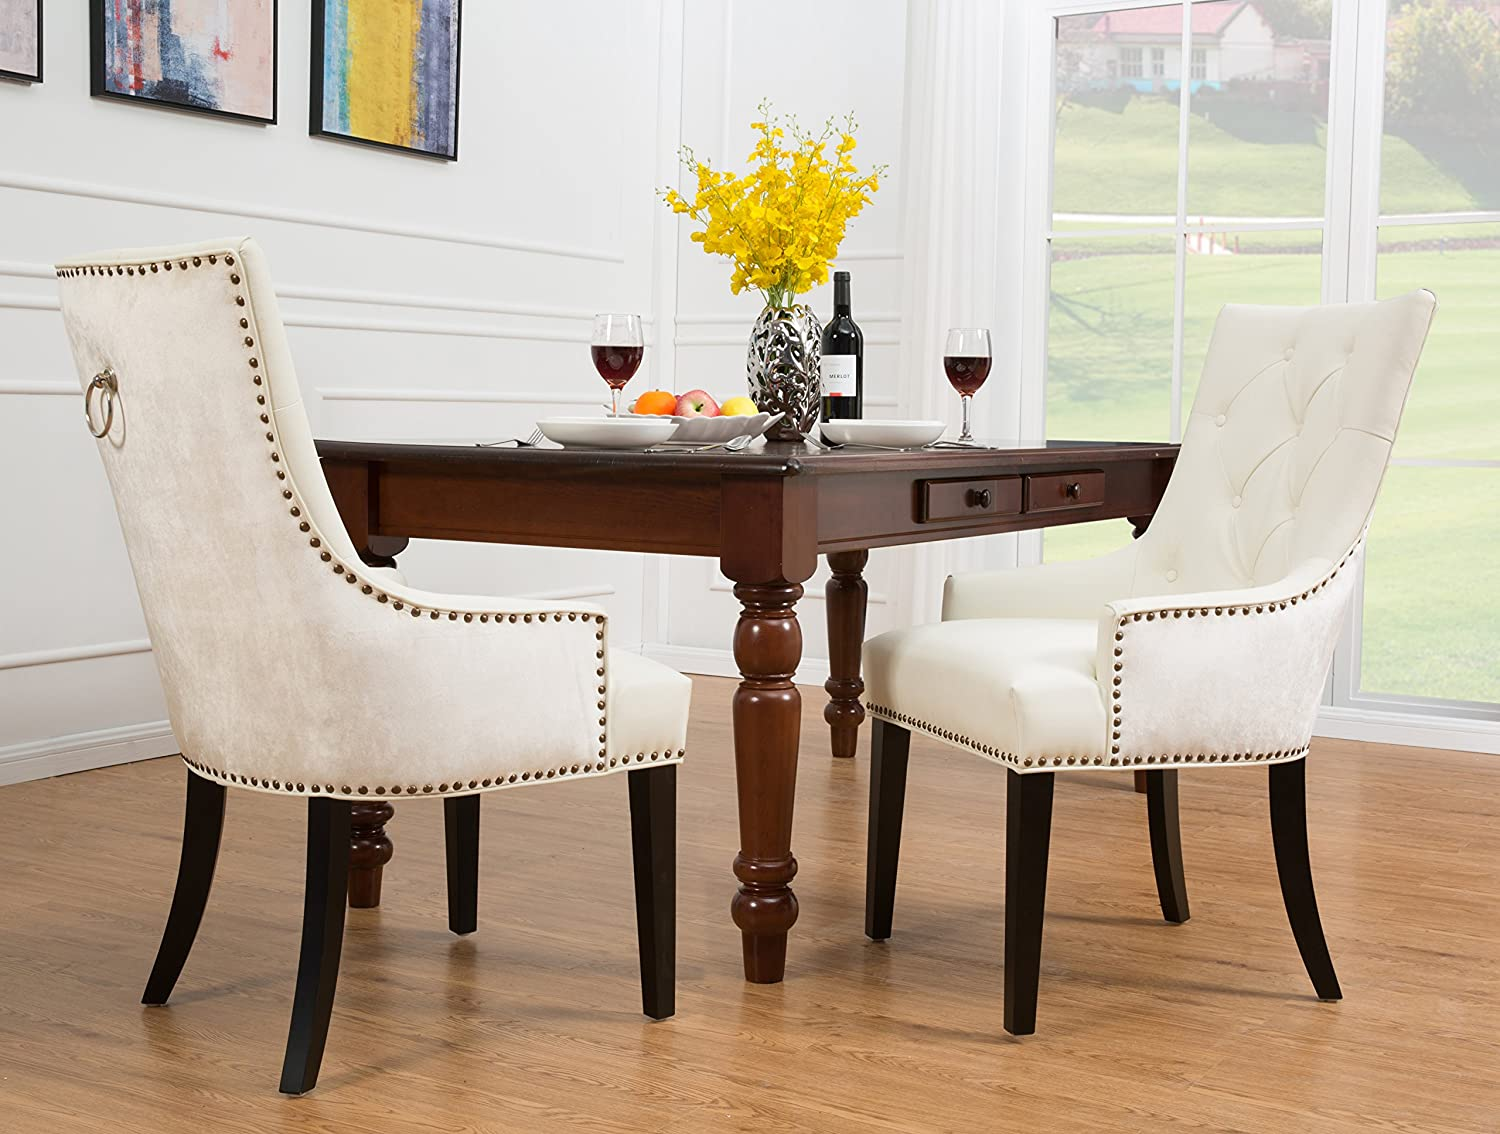 Iconic Home Cadence Dining Side Chair Button Tufted PU Leather Velvet Polished Brass Nailheads Espresso Finished Wooden Legs, White, Modern Transitional